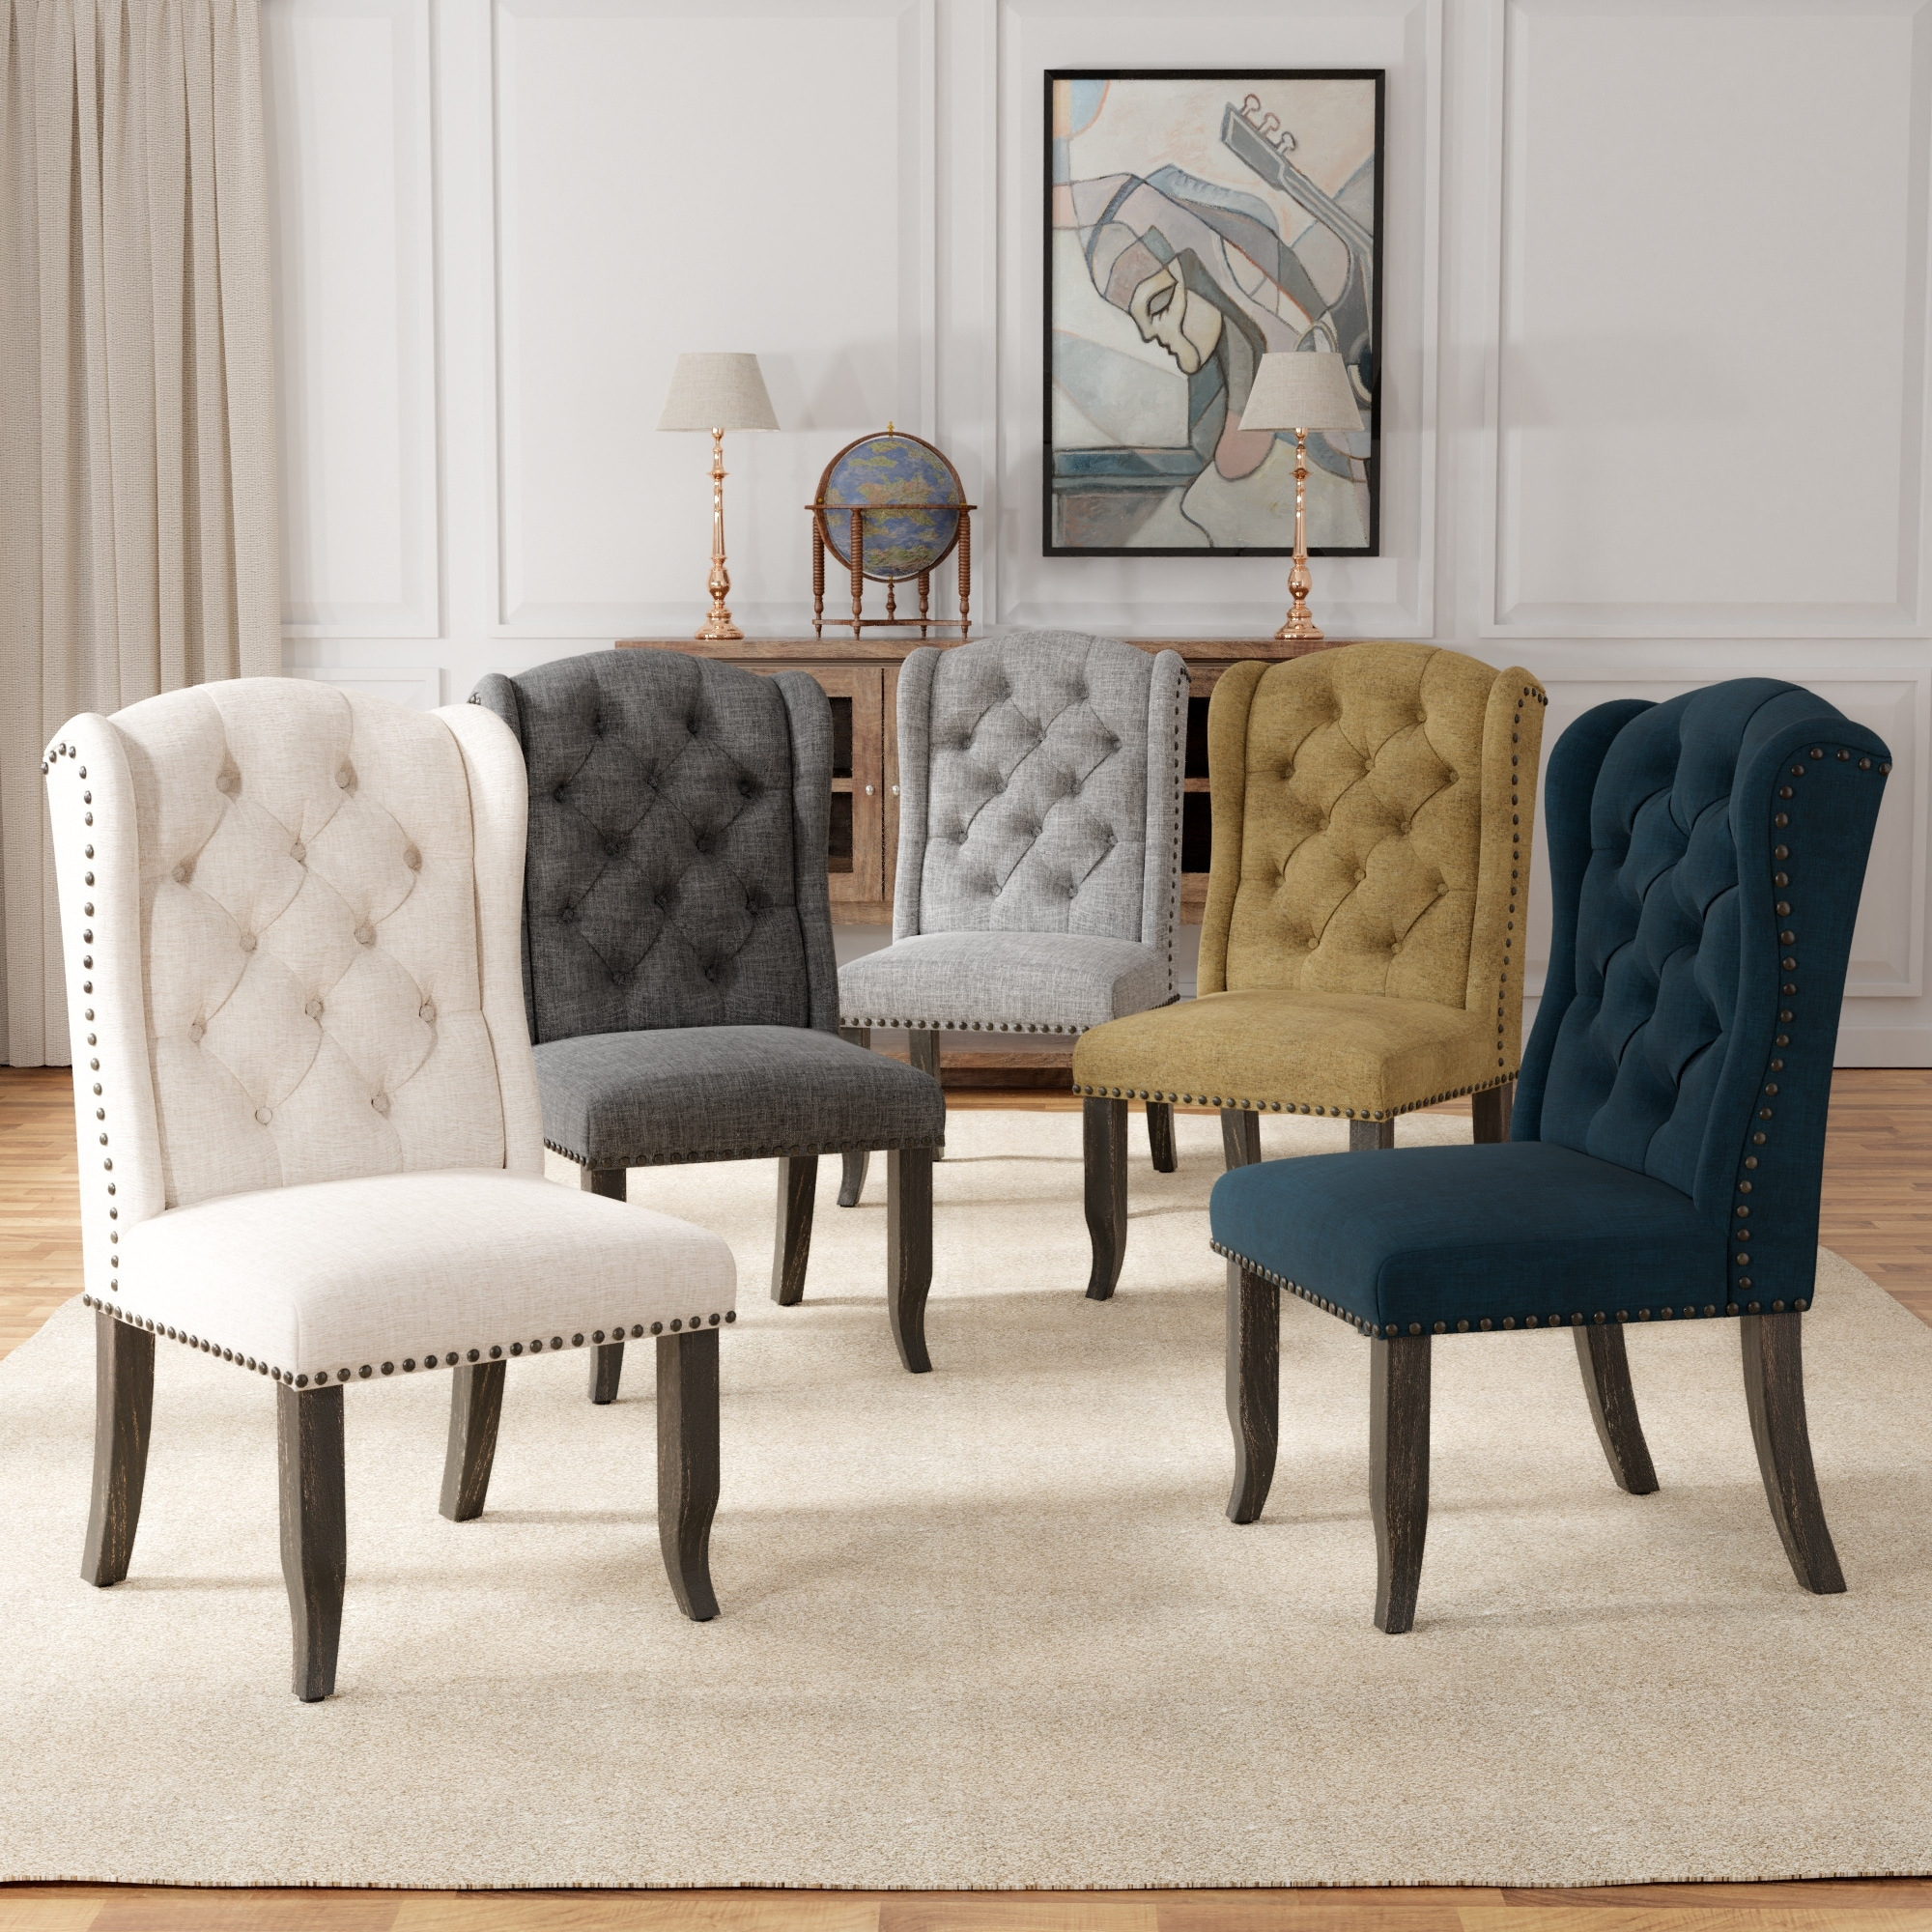 Image of: Shop Black Friday Deals On Furniture Of America Tays Rustic Linen Dining Chairs Set Of 2 On Sale Overstock 20830807